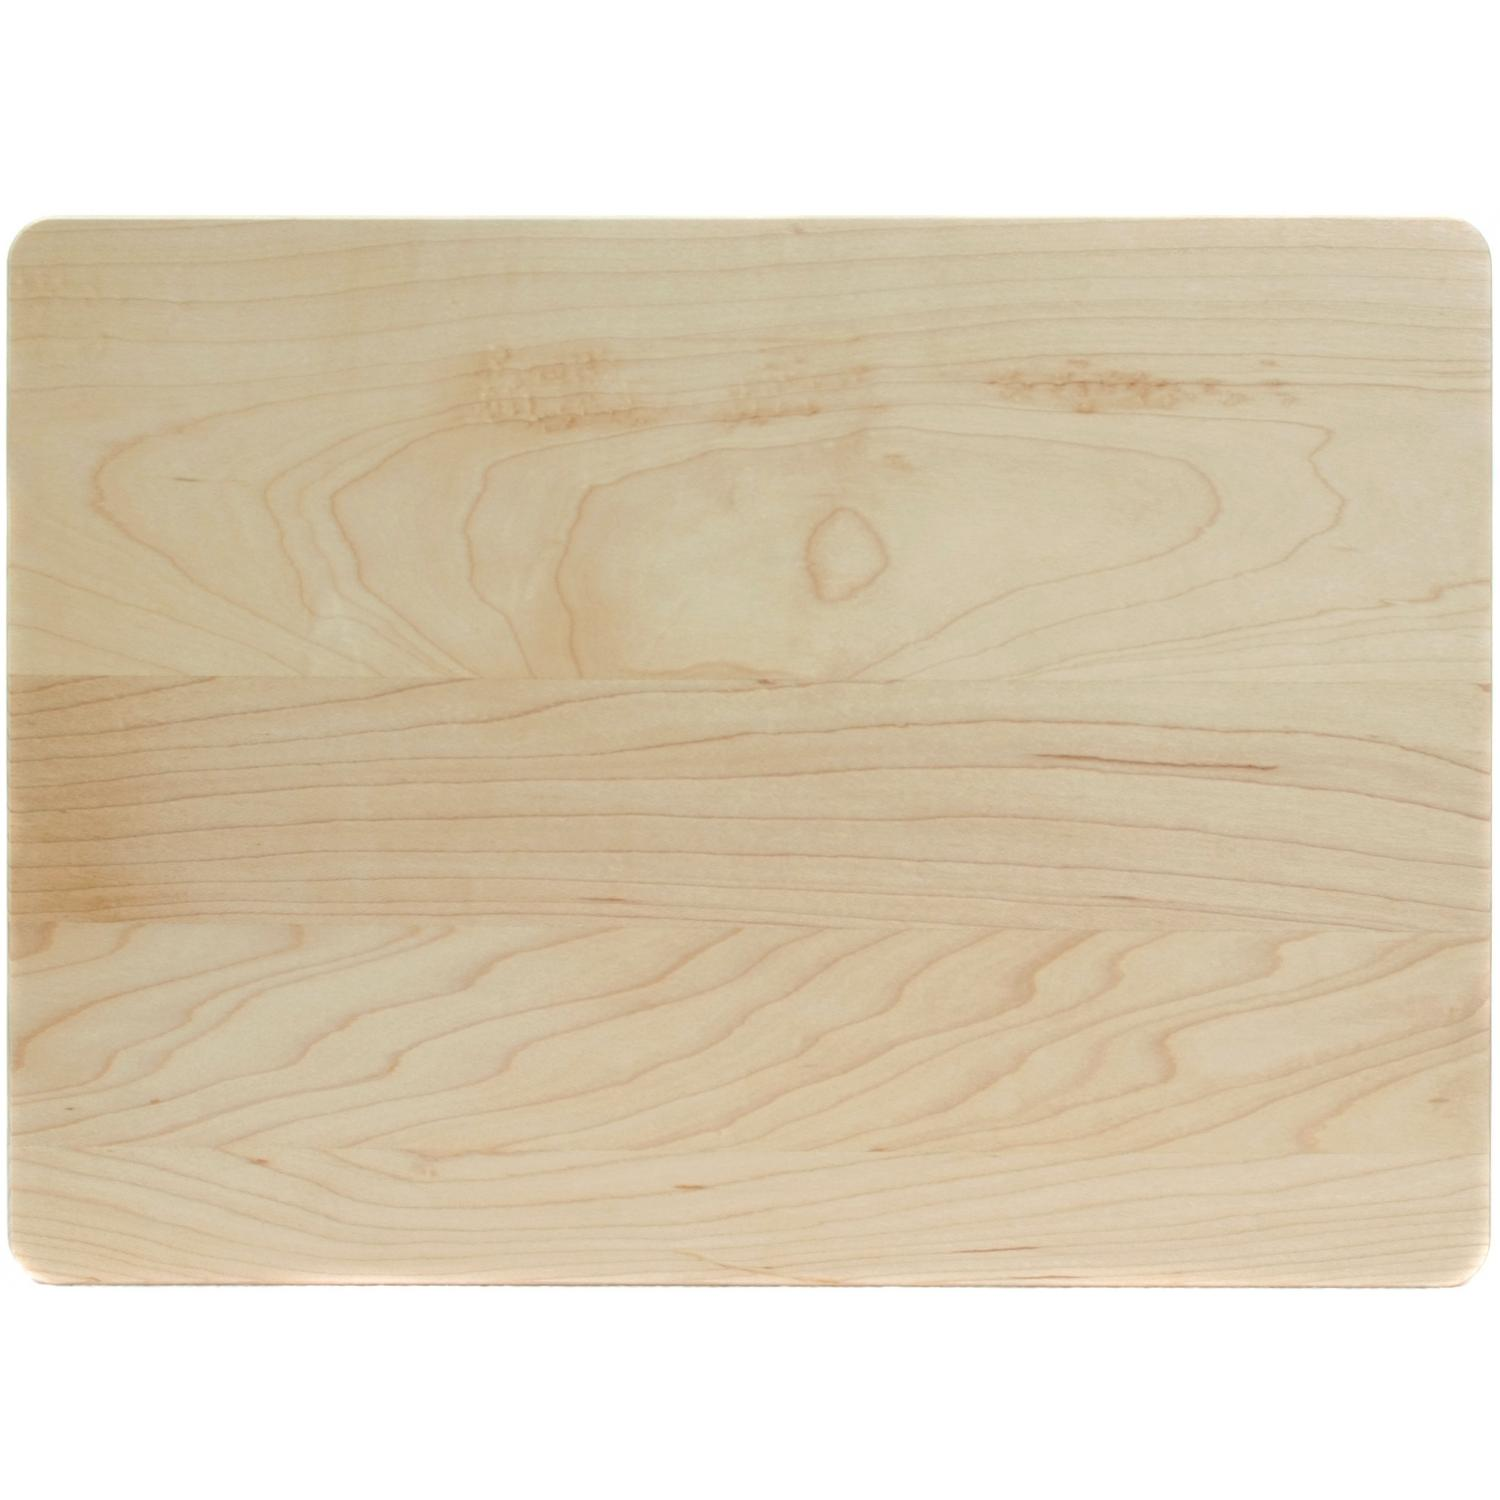 Professional Style Board Reversible